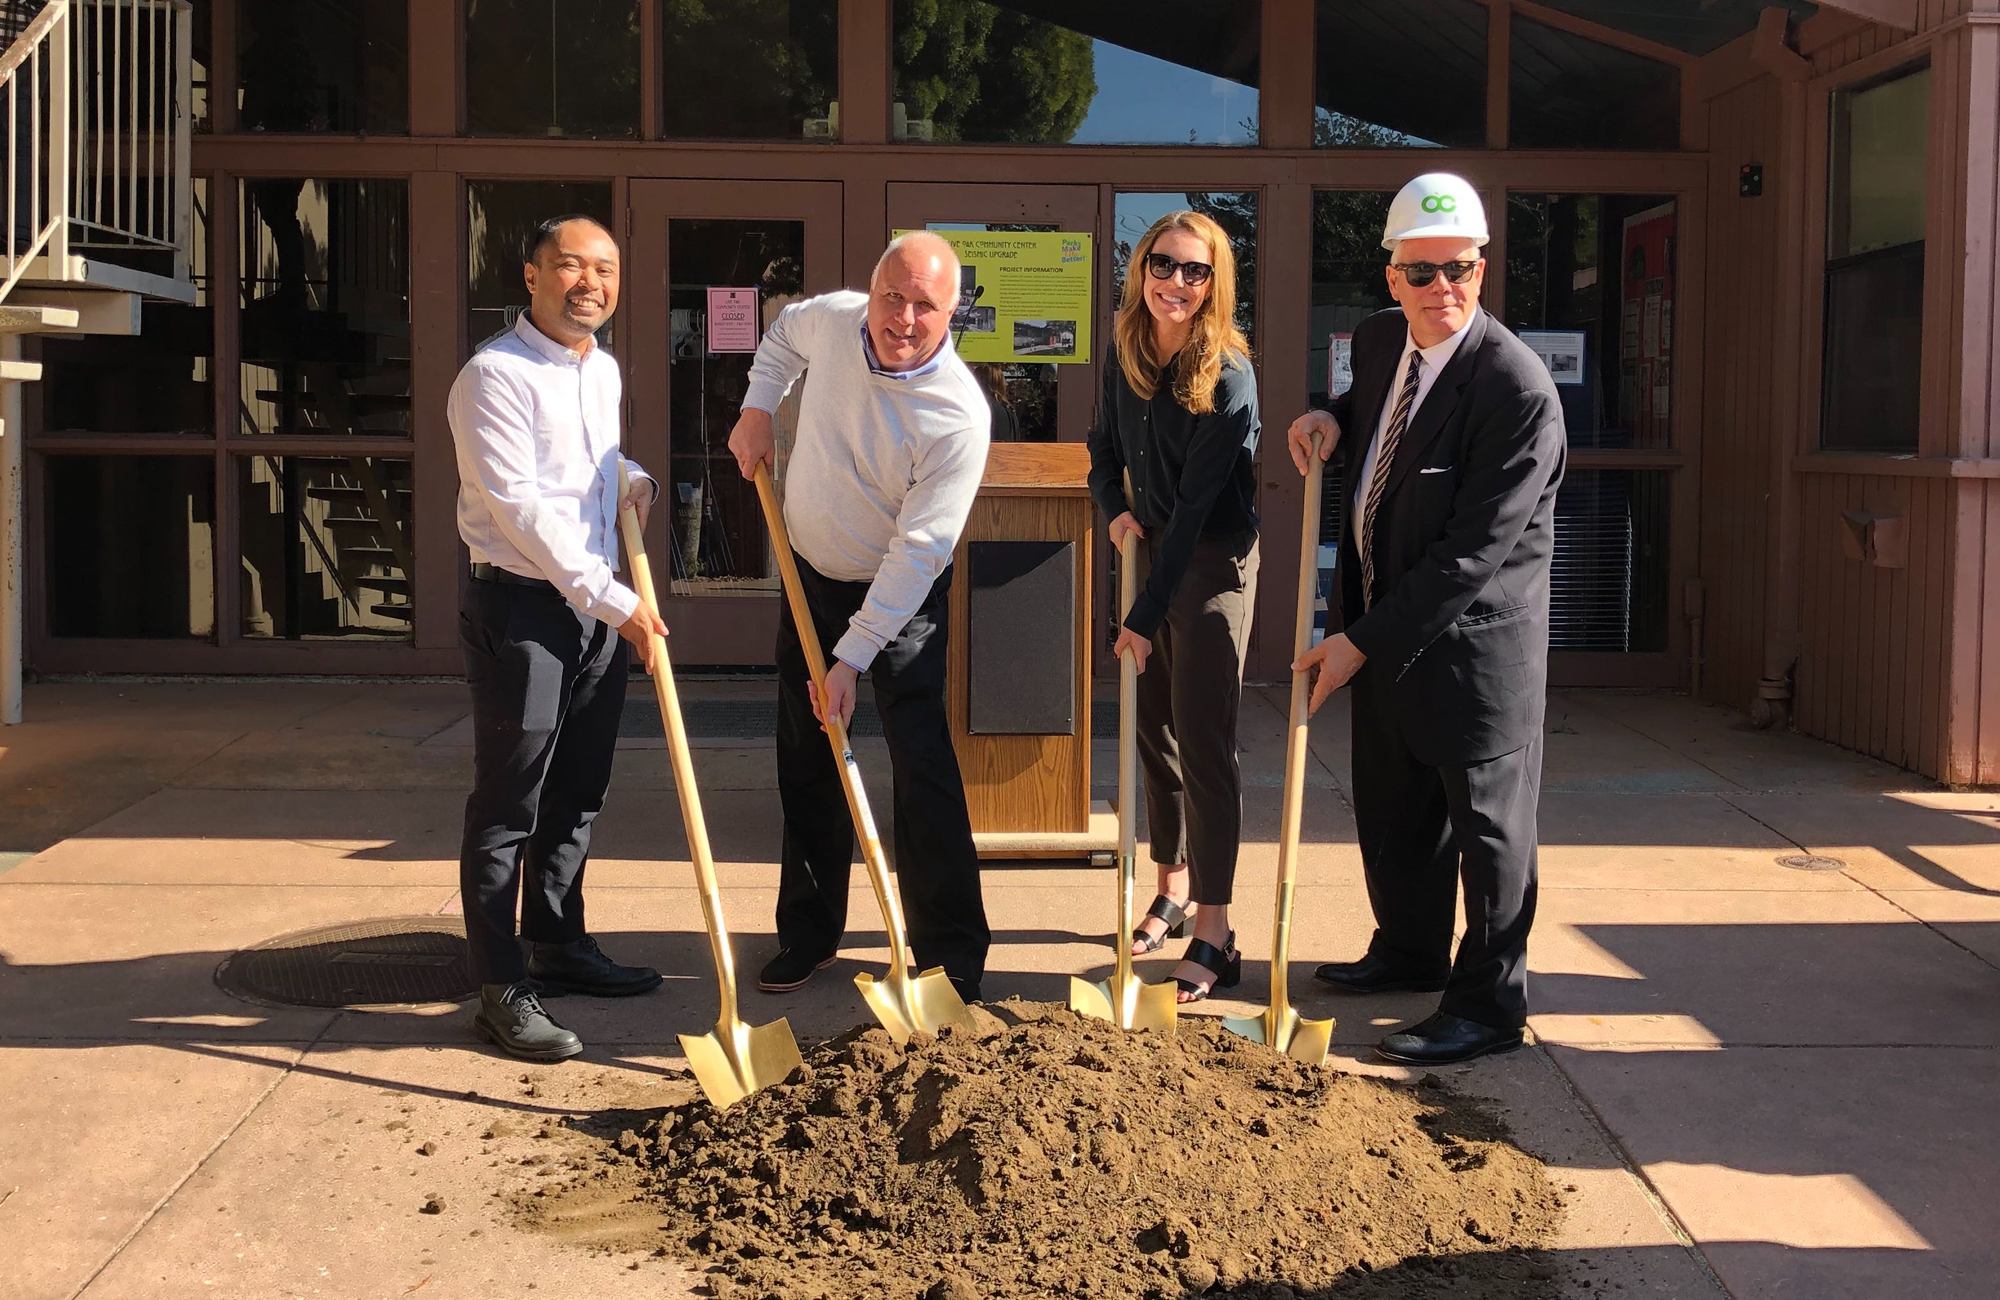 City of Berkeley Live Oak Community Center Groundbreaking